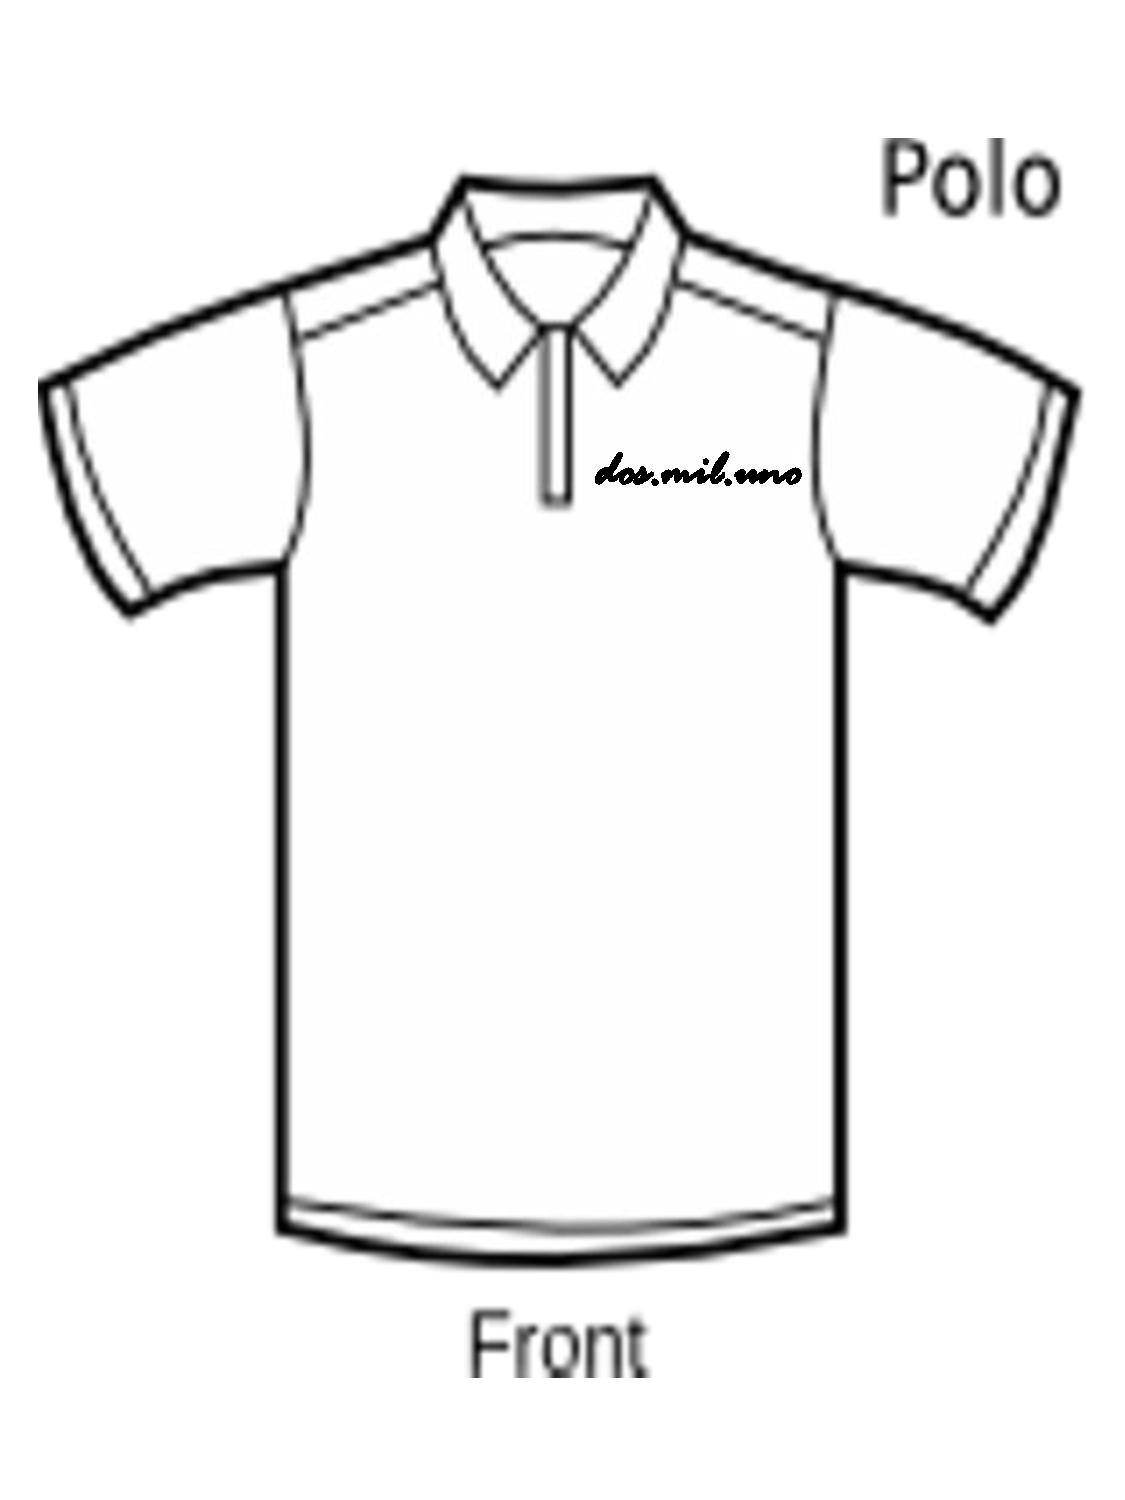 Polo shirt design template clipart best for Polo shirt design template